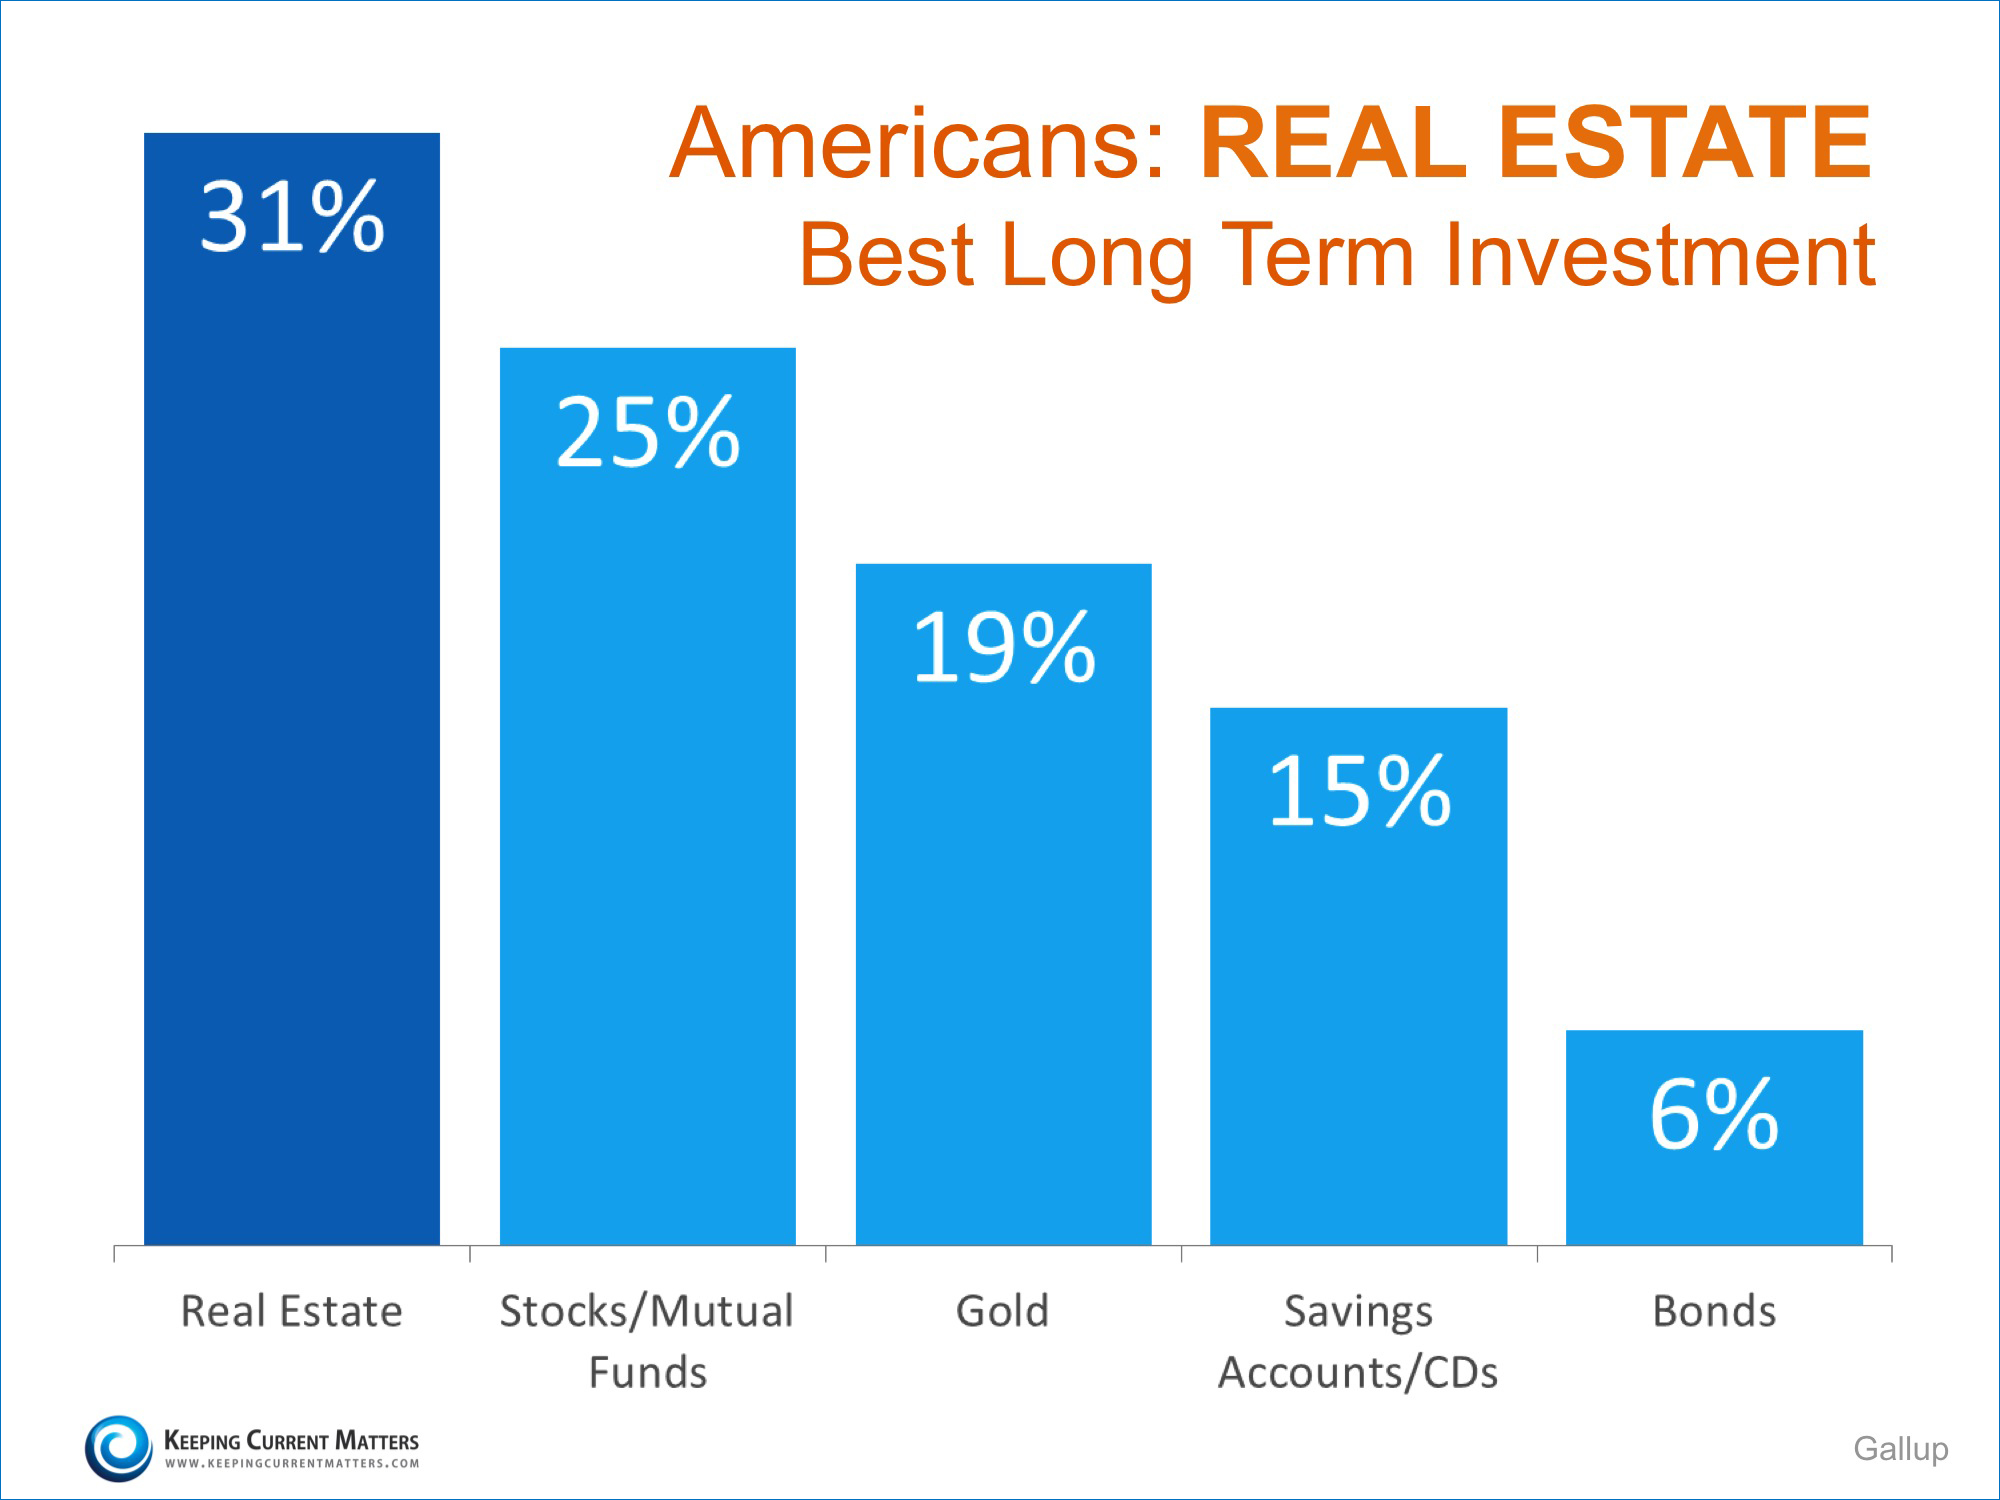 Americans: Real Estate is Best Long Term Investment | Keeping Current Matters